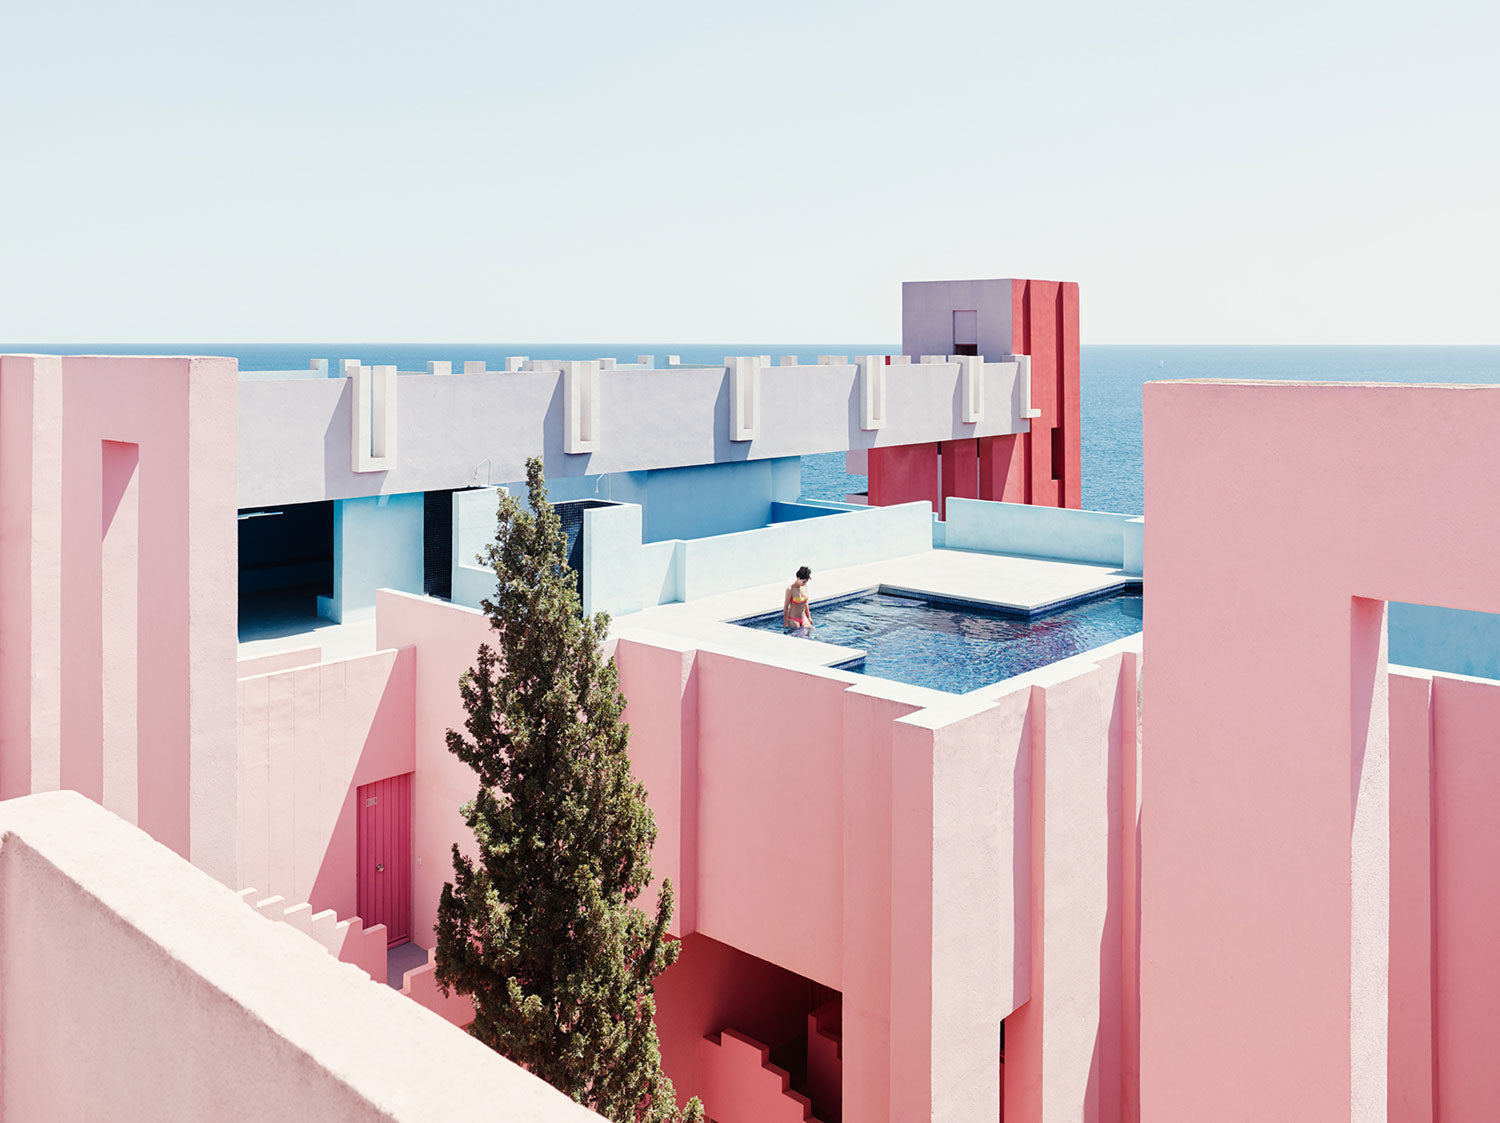 Pink concrete housing